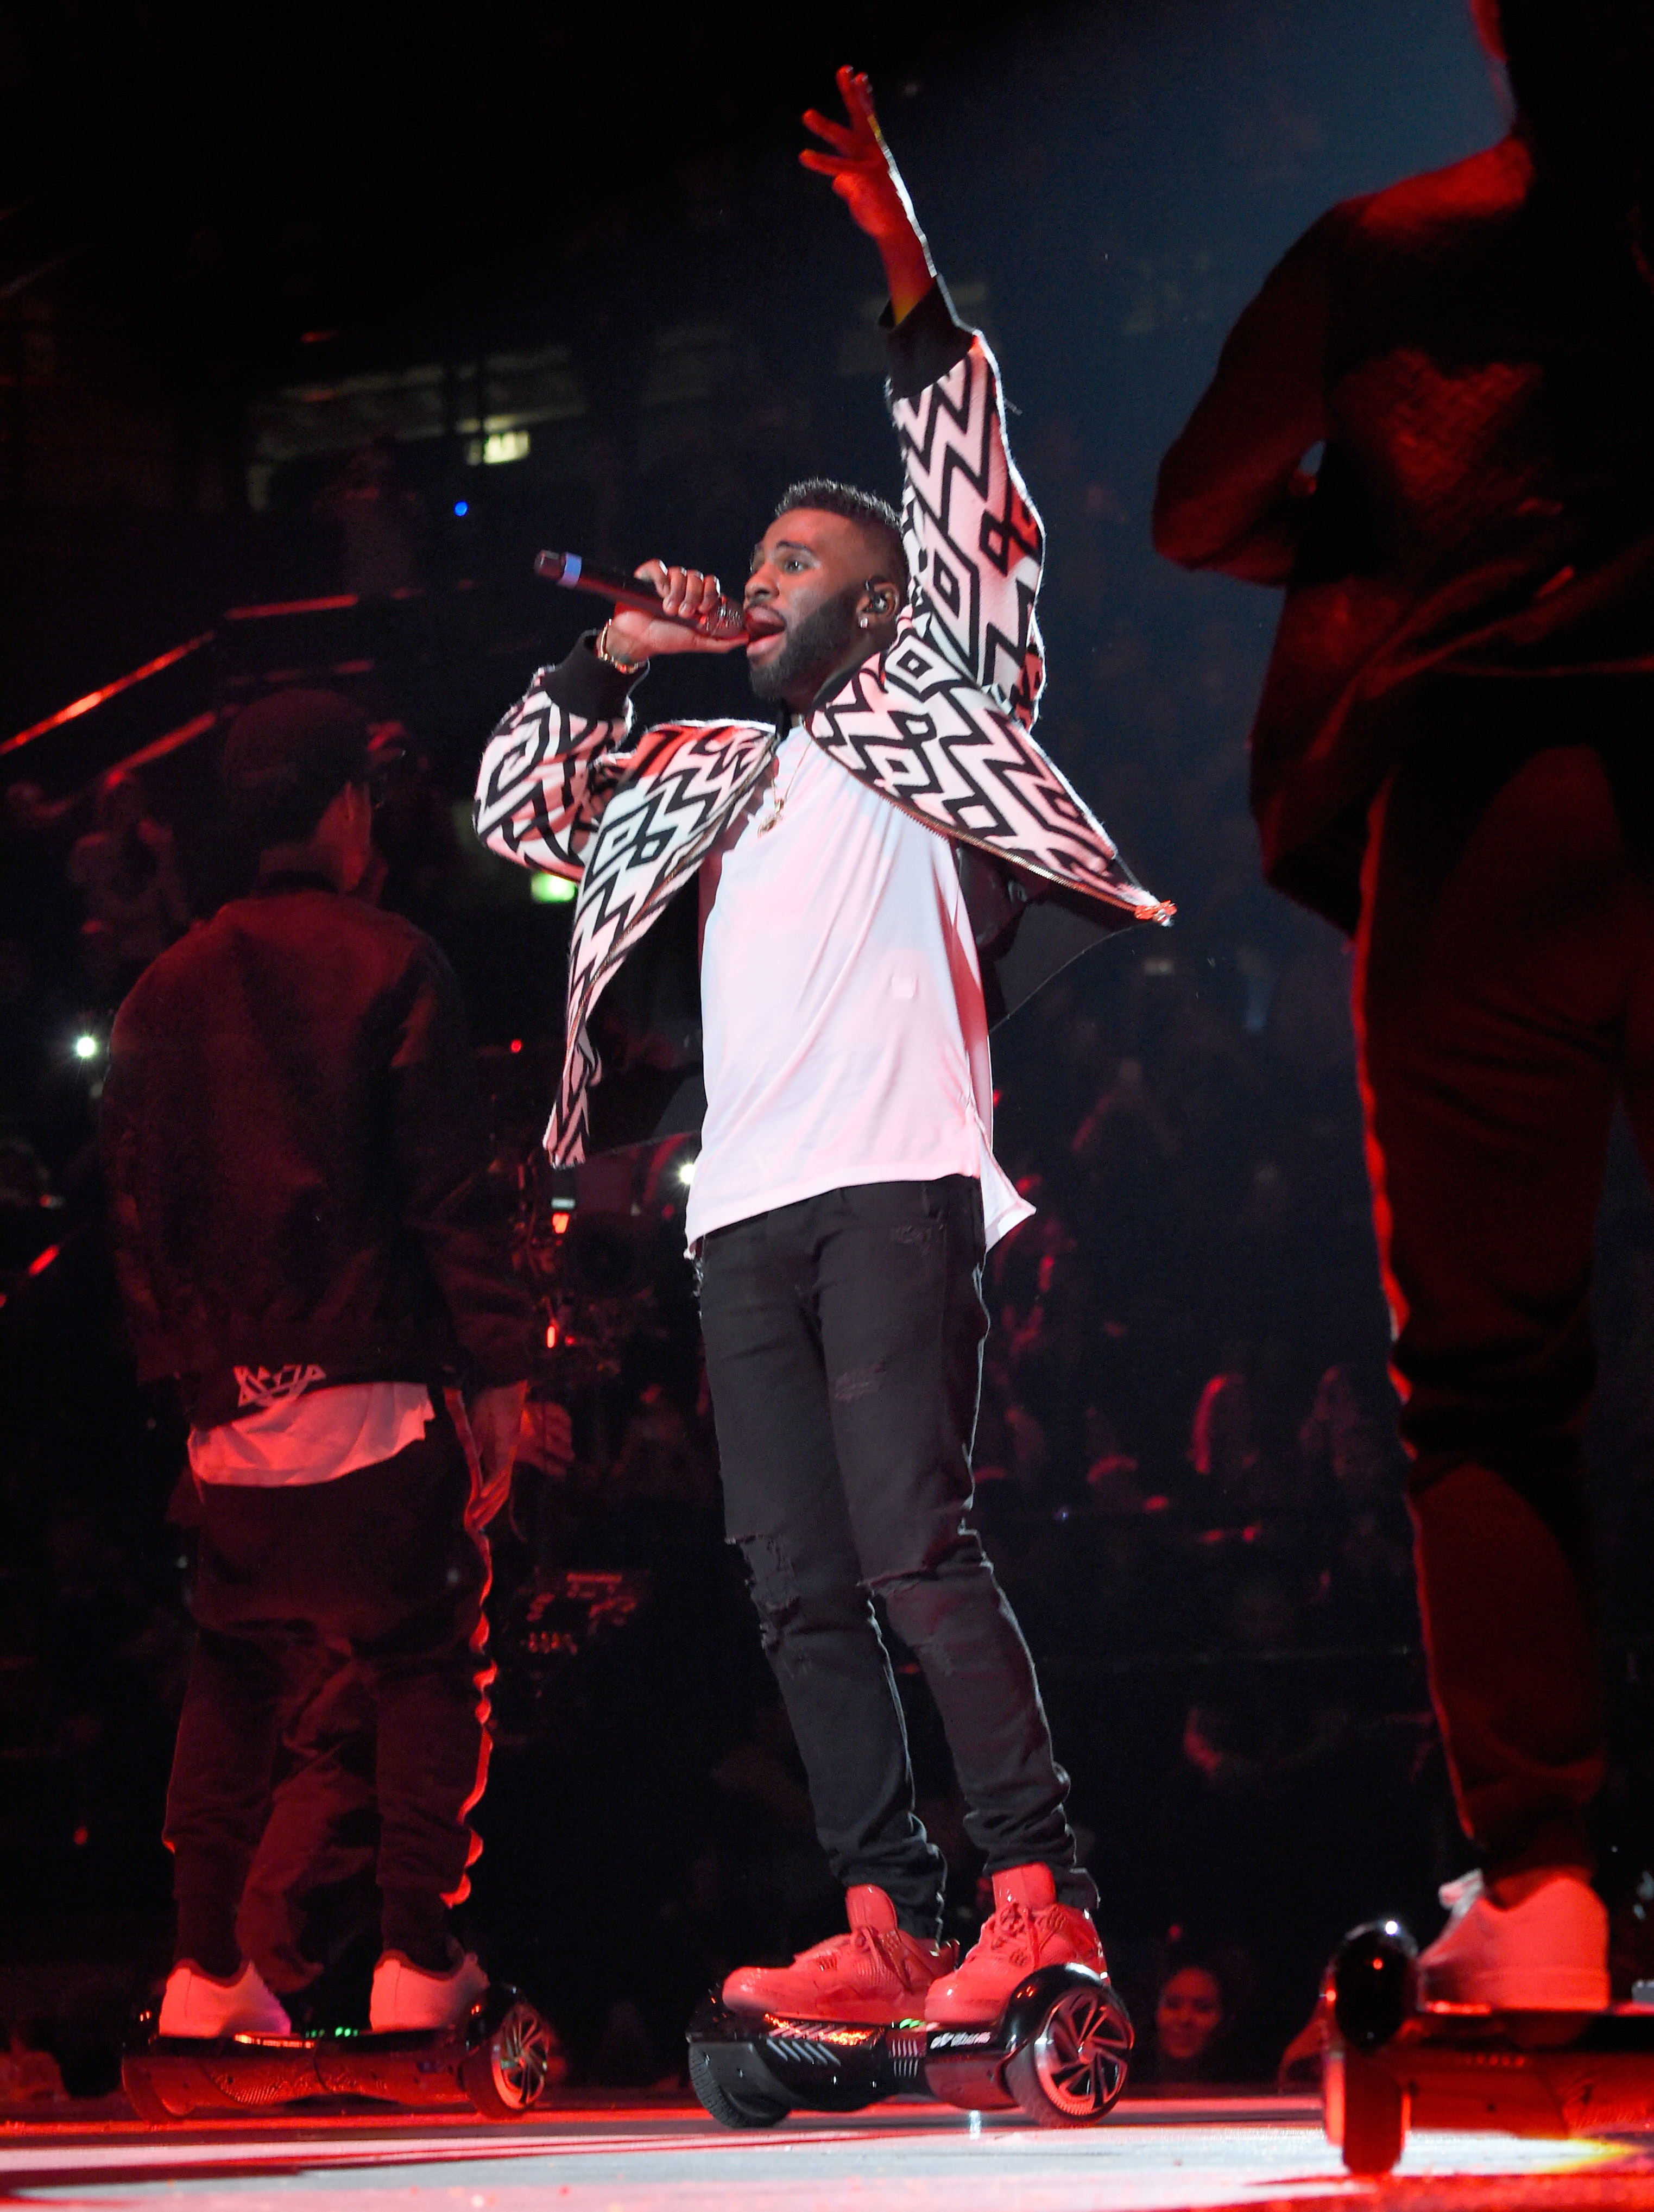 Jason Derulo performs at the MTV Europe Music Awards 2015 at Mediolanum Forum in Milan, Italy on October 25, 2015.